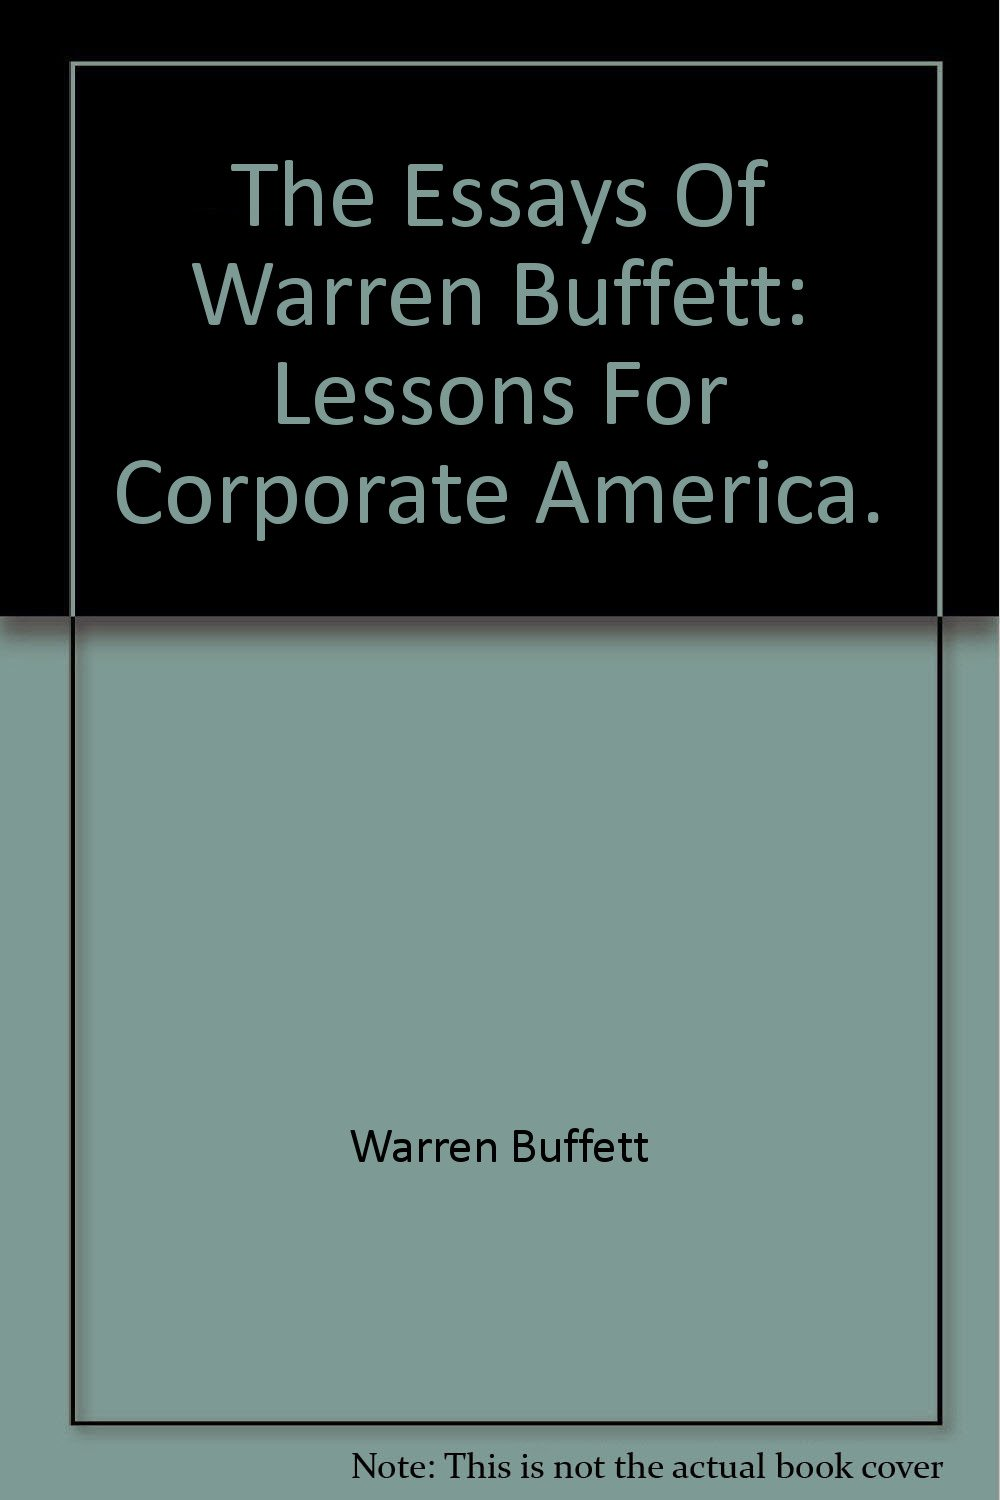 006 61wo12biiixl The Essays Of Warren Buffett Lessons For Corporate America Essay Remarkable Third Edition 3rd Second Pdf Audio Book Full